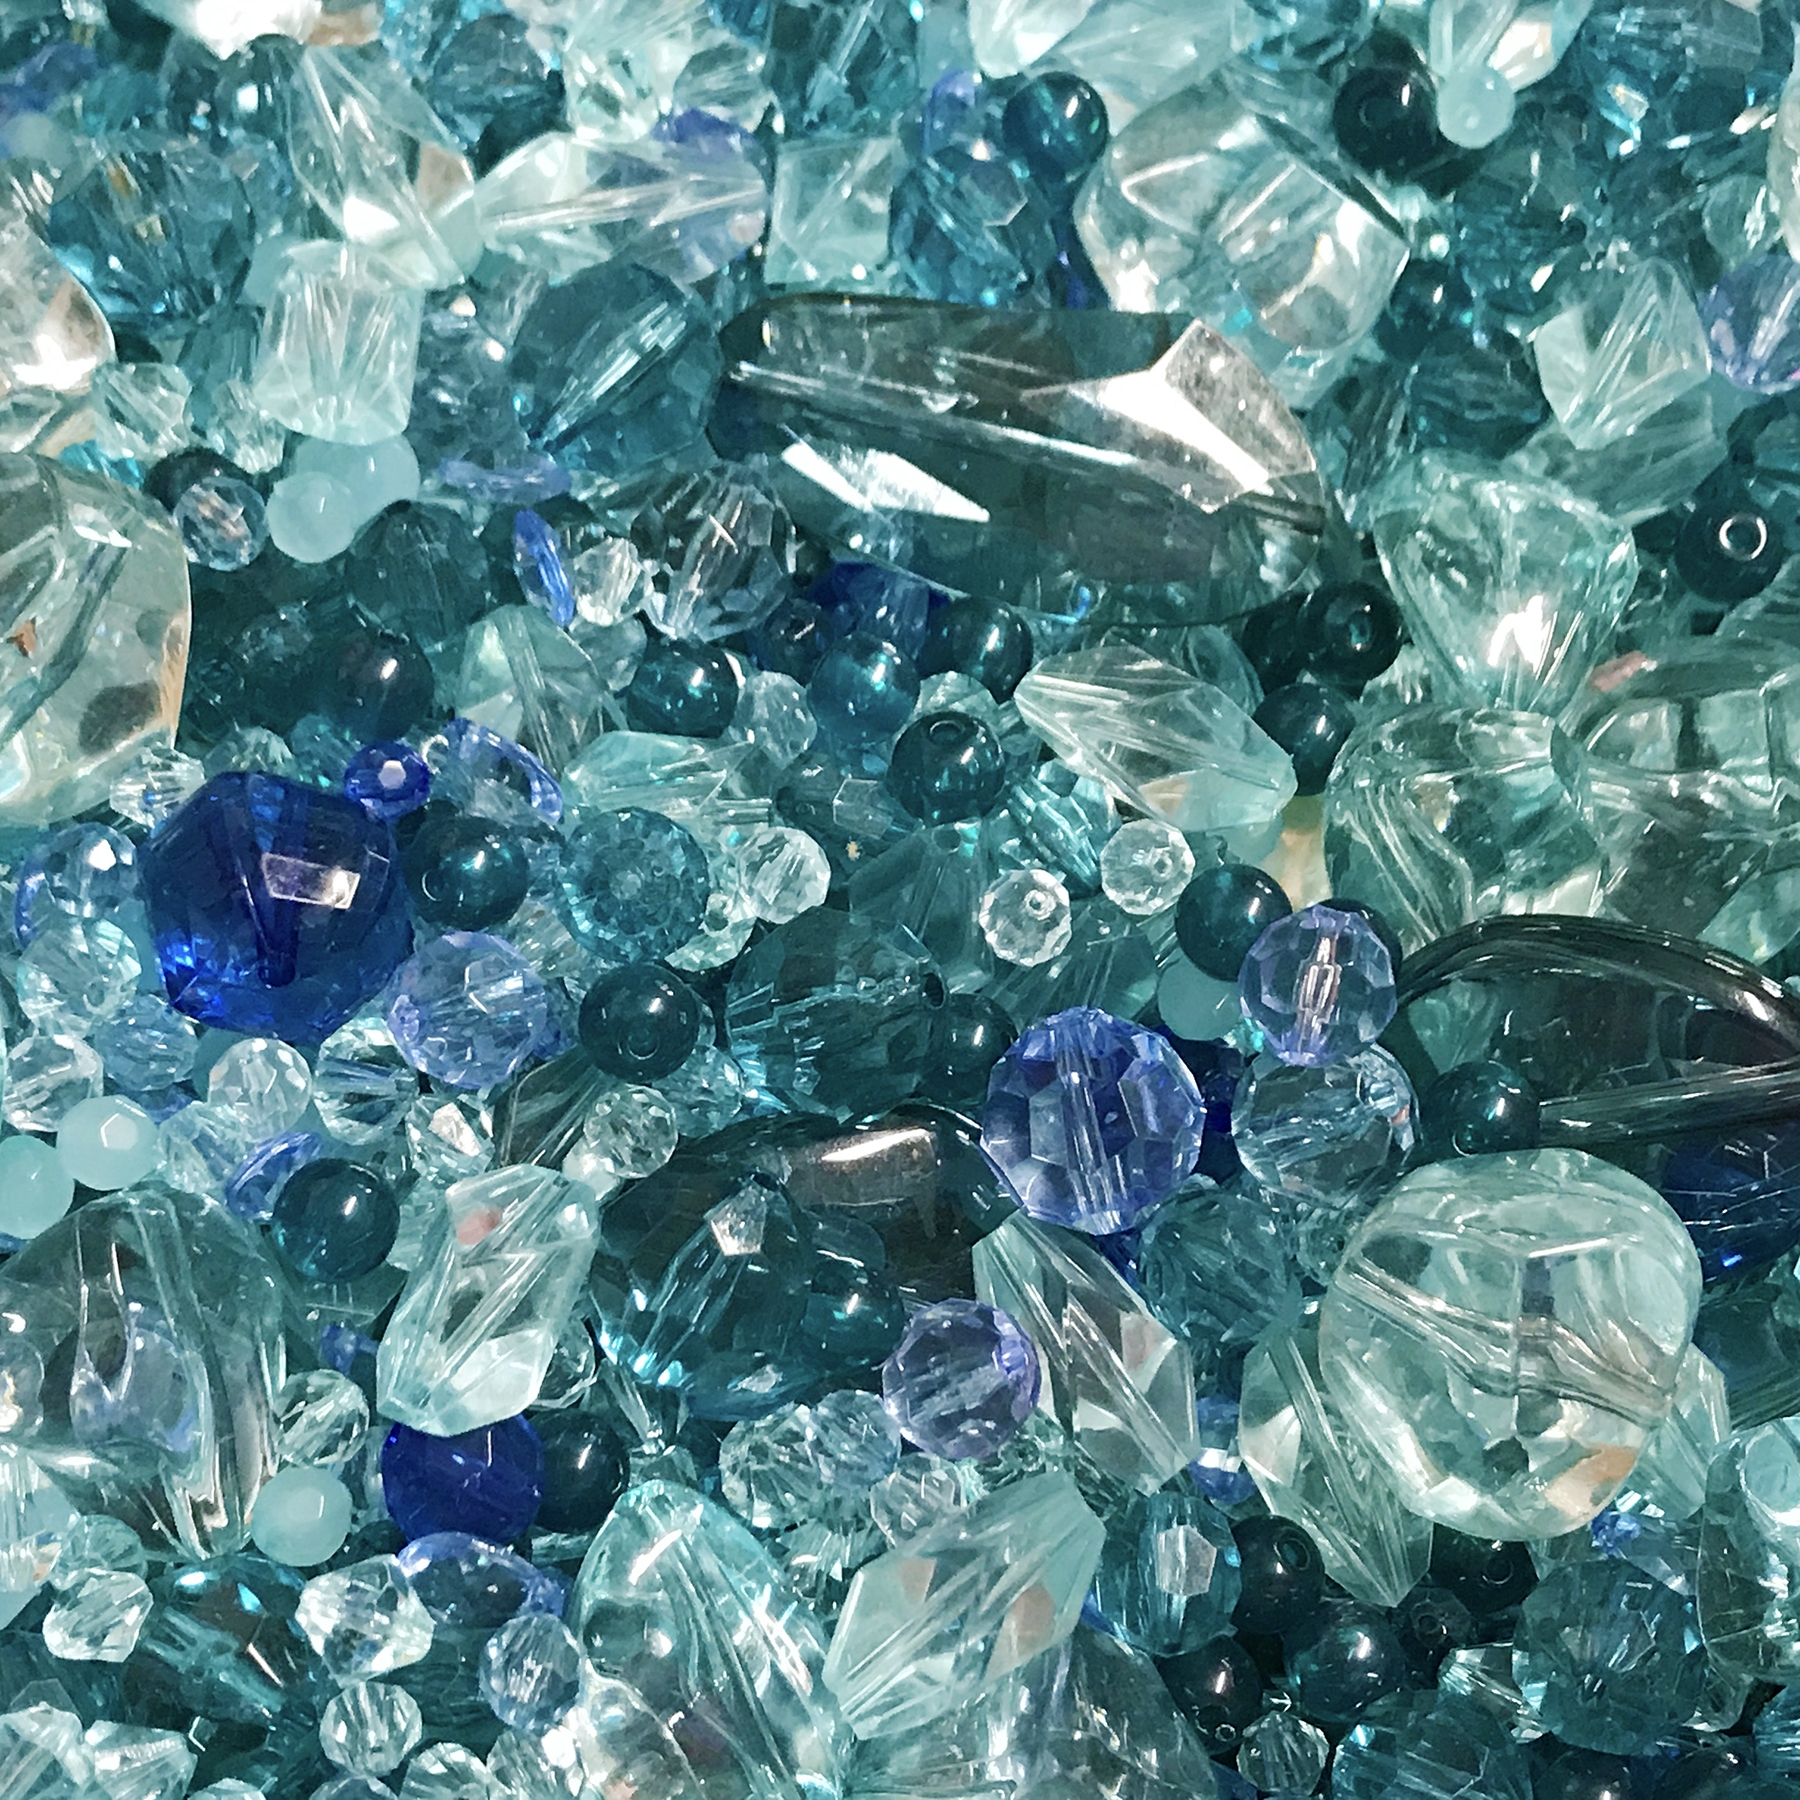 Ocean so Blue II bead mix, designer beads, acrylic beads, colorful beads, designer quality beads, plastic beads, crystal Zircon beads, teal beads, assorted beads, mixed beads, Montana blue beads, beading supplies, B'sue Boutiques, 0913